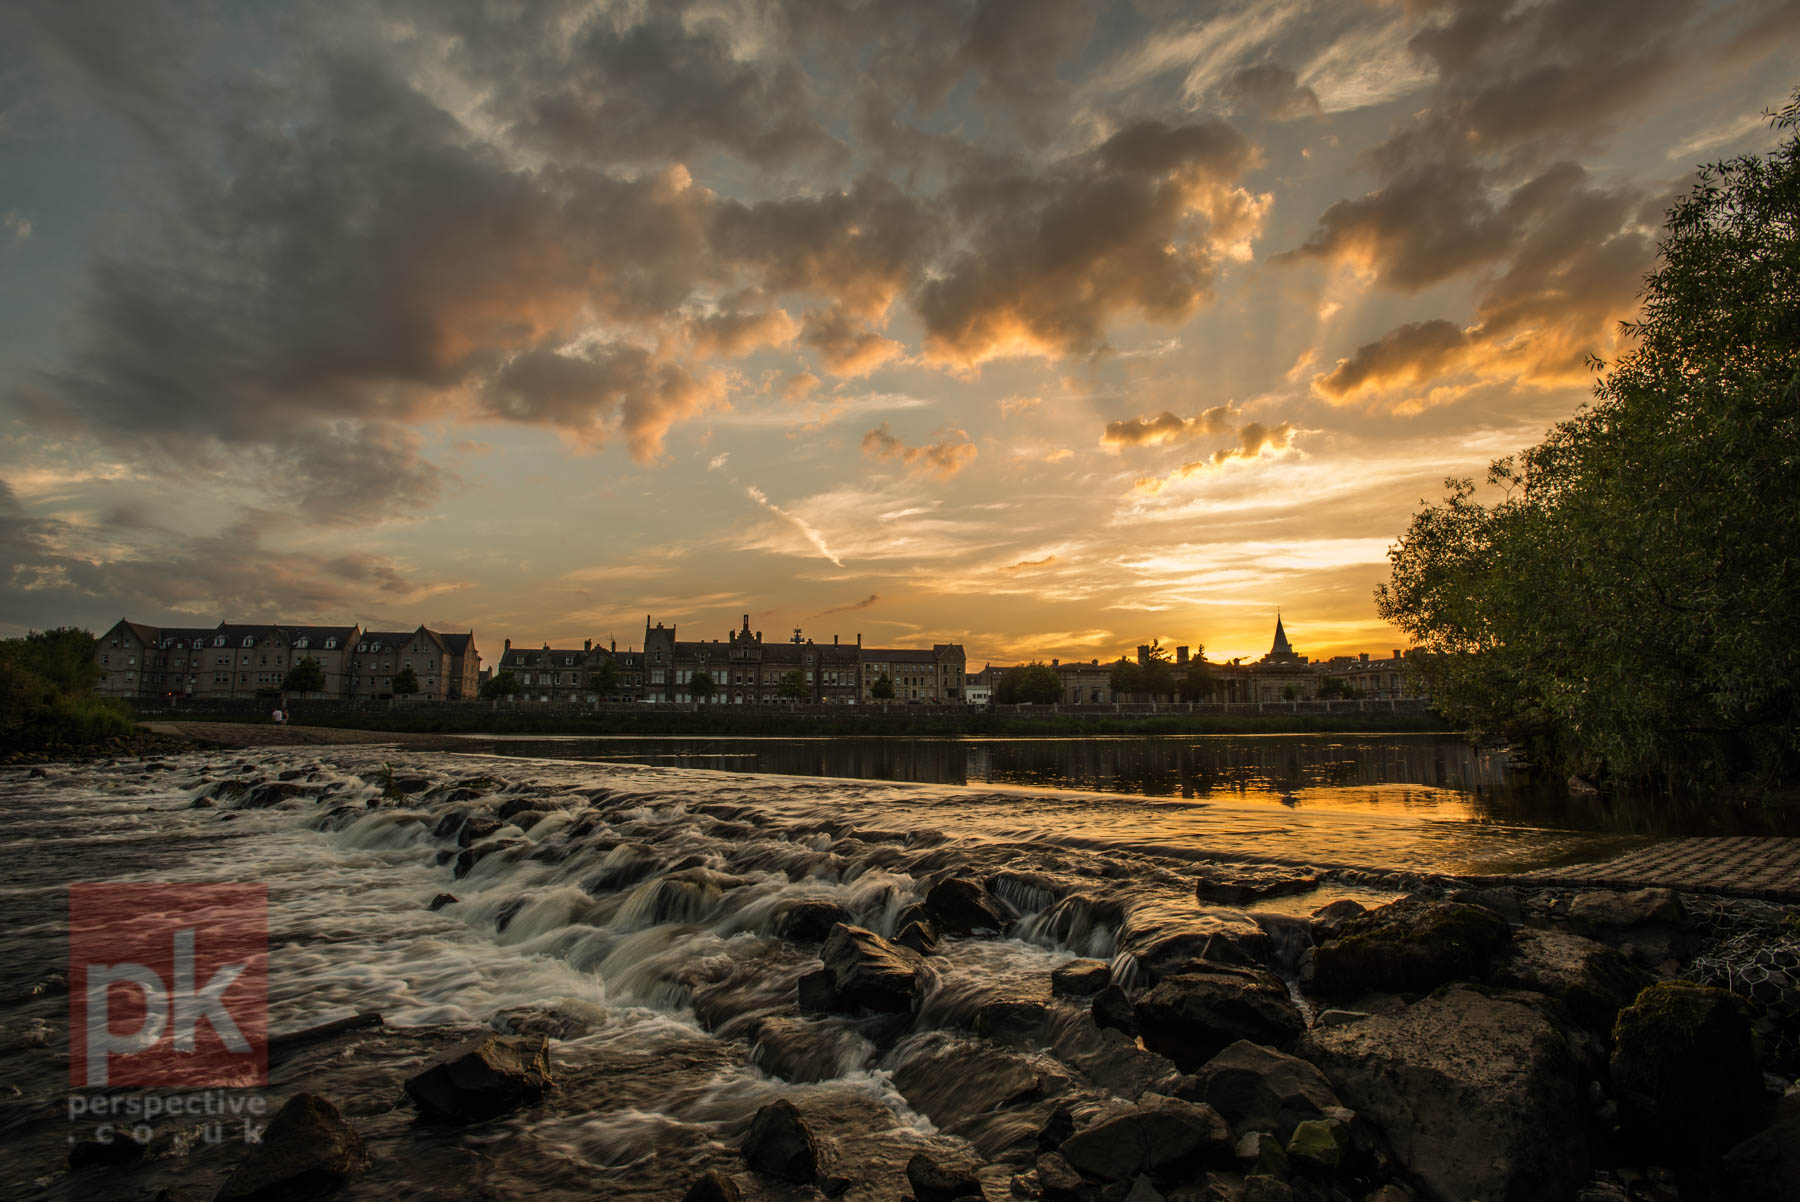 The sun setting on the River Tay - there was some really stunning sunsets over the course of 2016